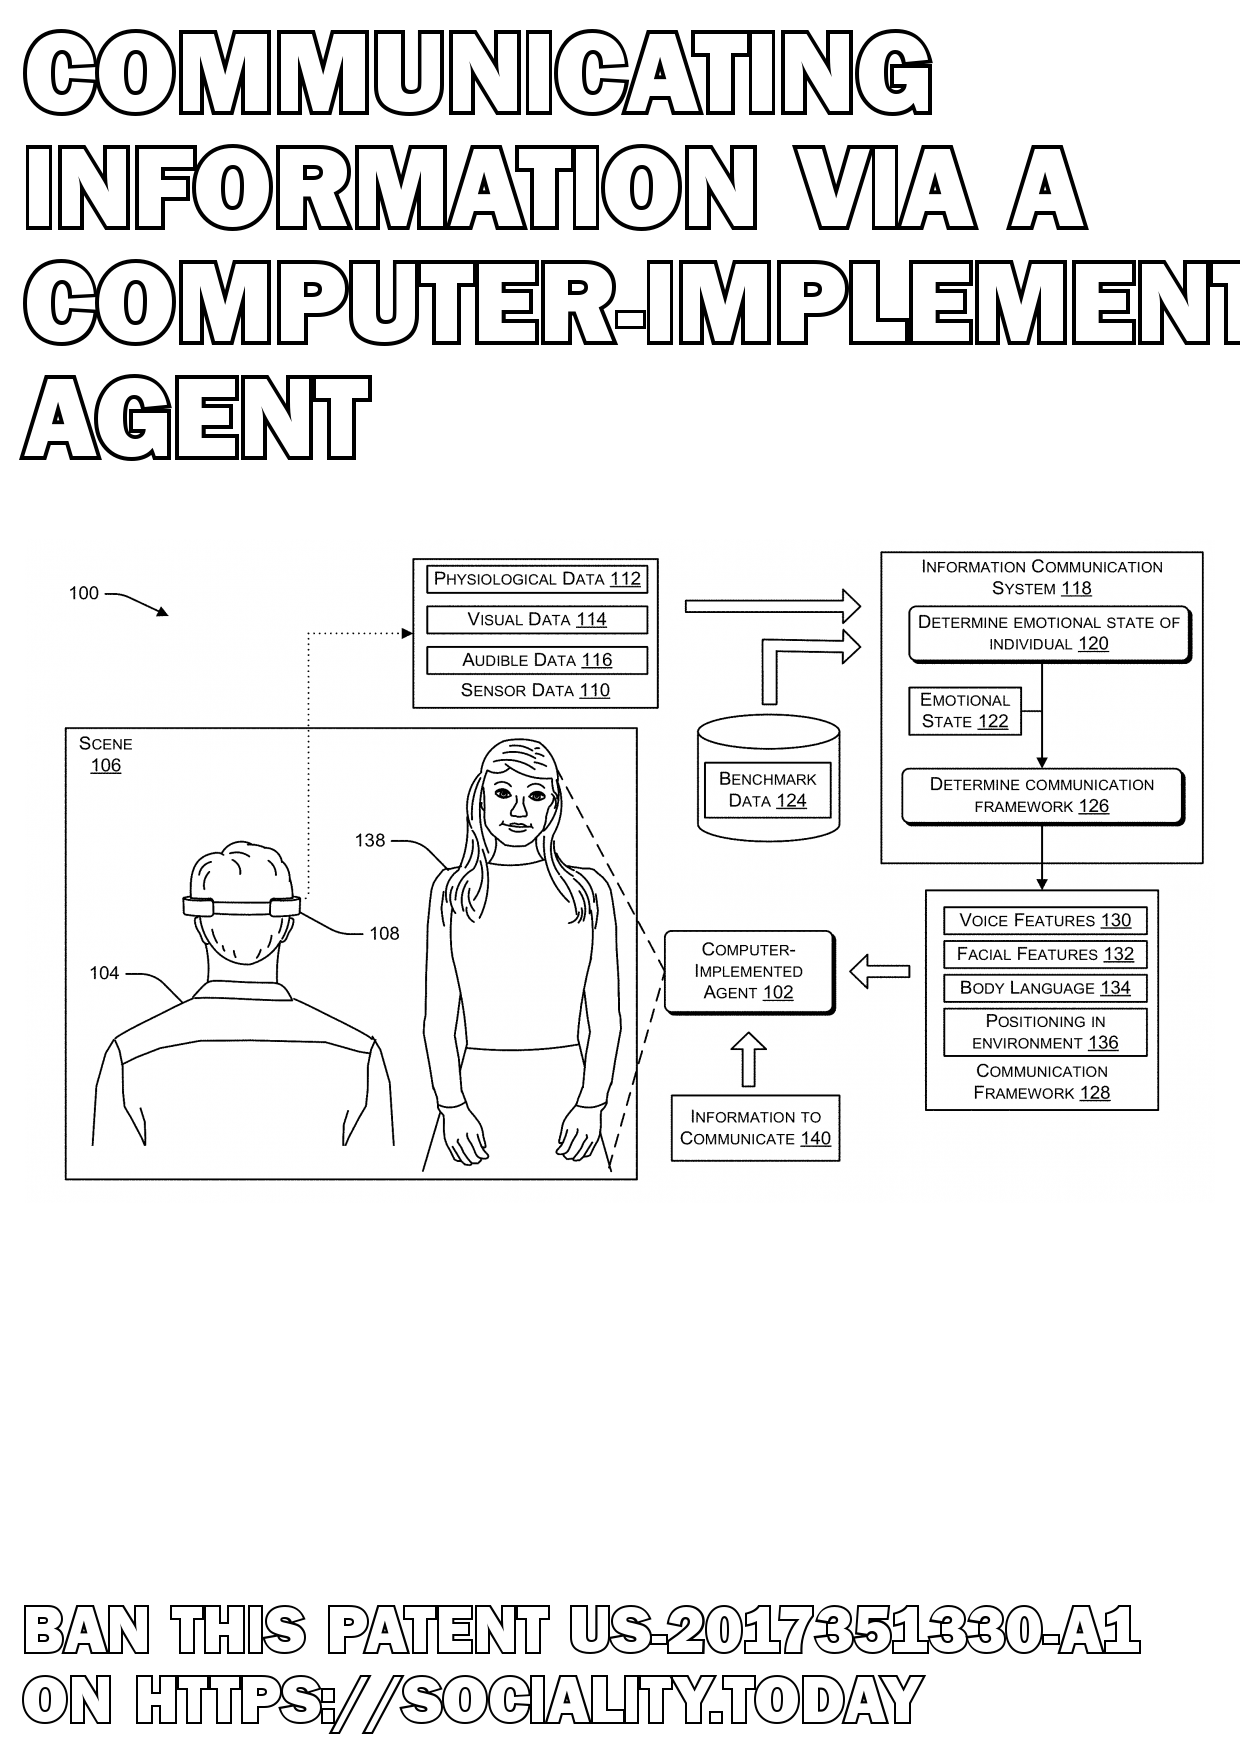 Communicating Information Via A Computer-Implemented Agent  - US-2017351330-A1